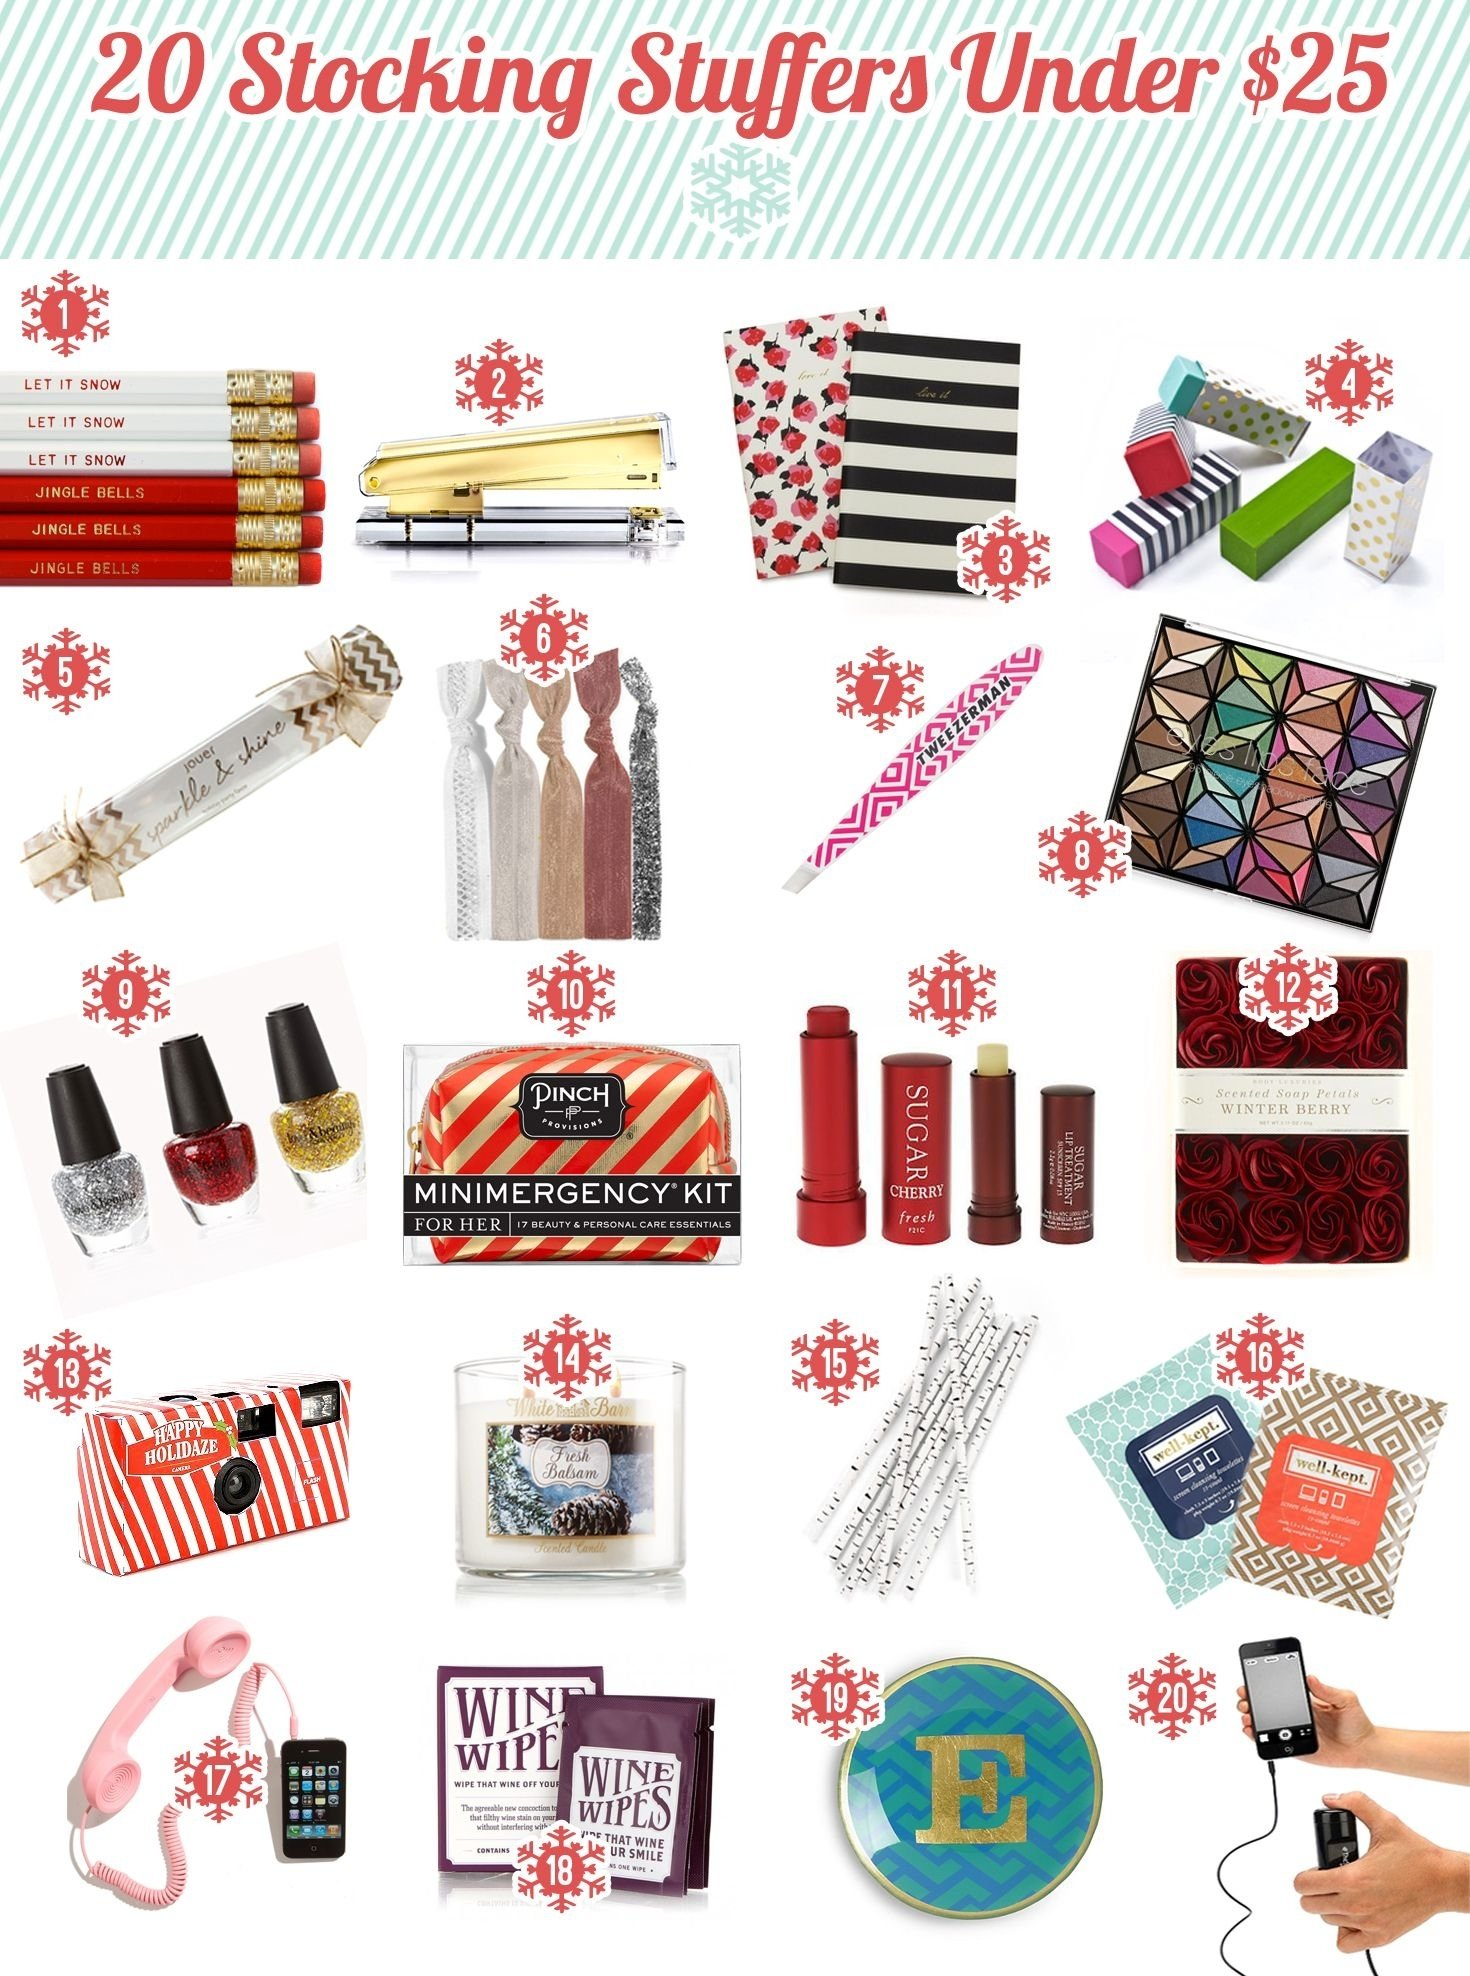 10 Amazing Last Minute Gift Ideas For Her 2013 holiday gift guide secret santa gift ideas under 25 most are 6